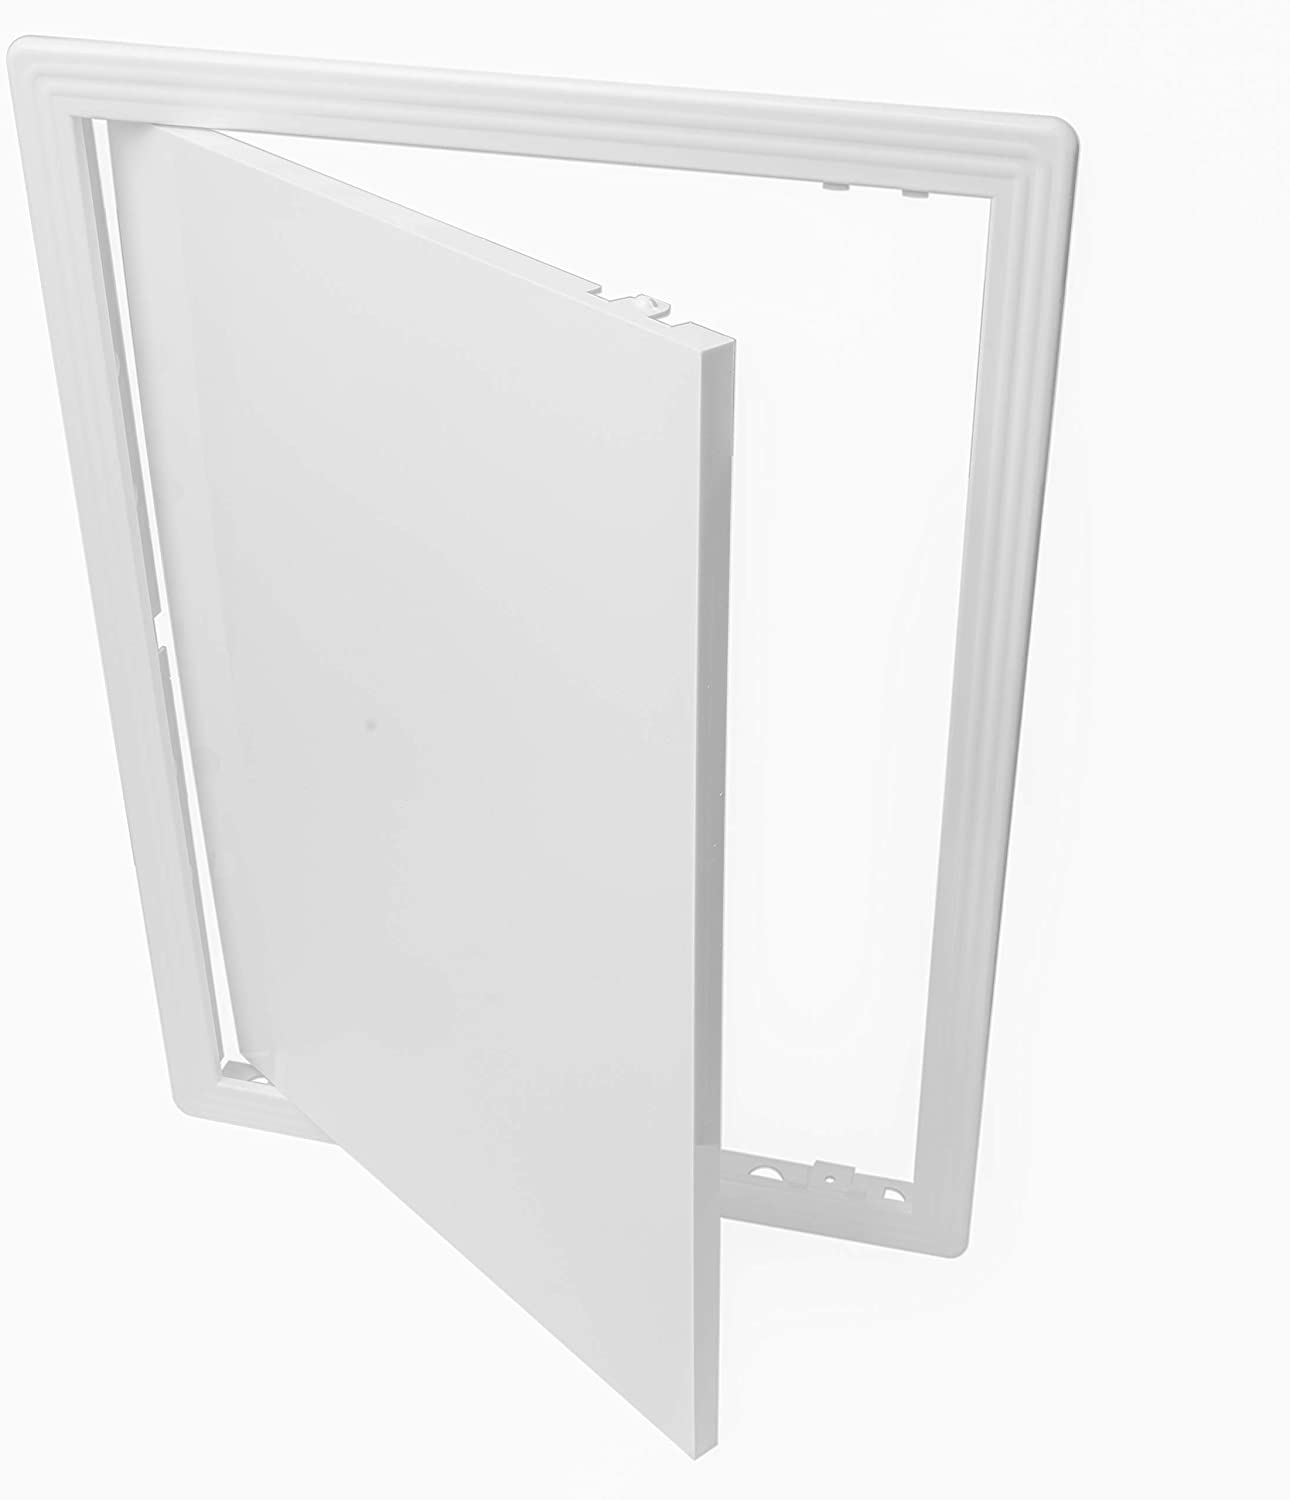 Easy Access Doors Vent Systems 12x16 Access Panel ABS Plastic Access Panel for Drywall Wall and Ceiling Electrical and Plumbing Service Door Cover